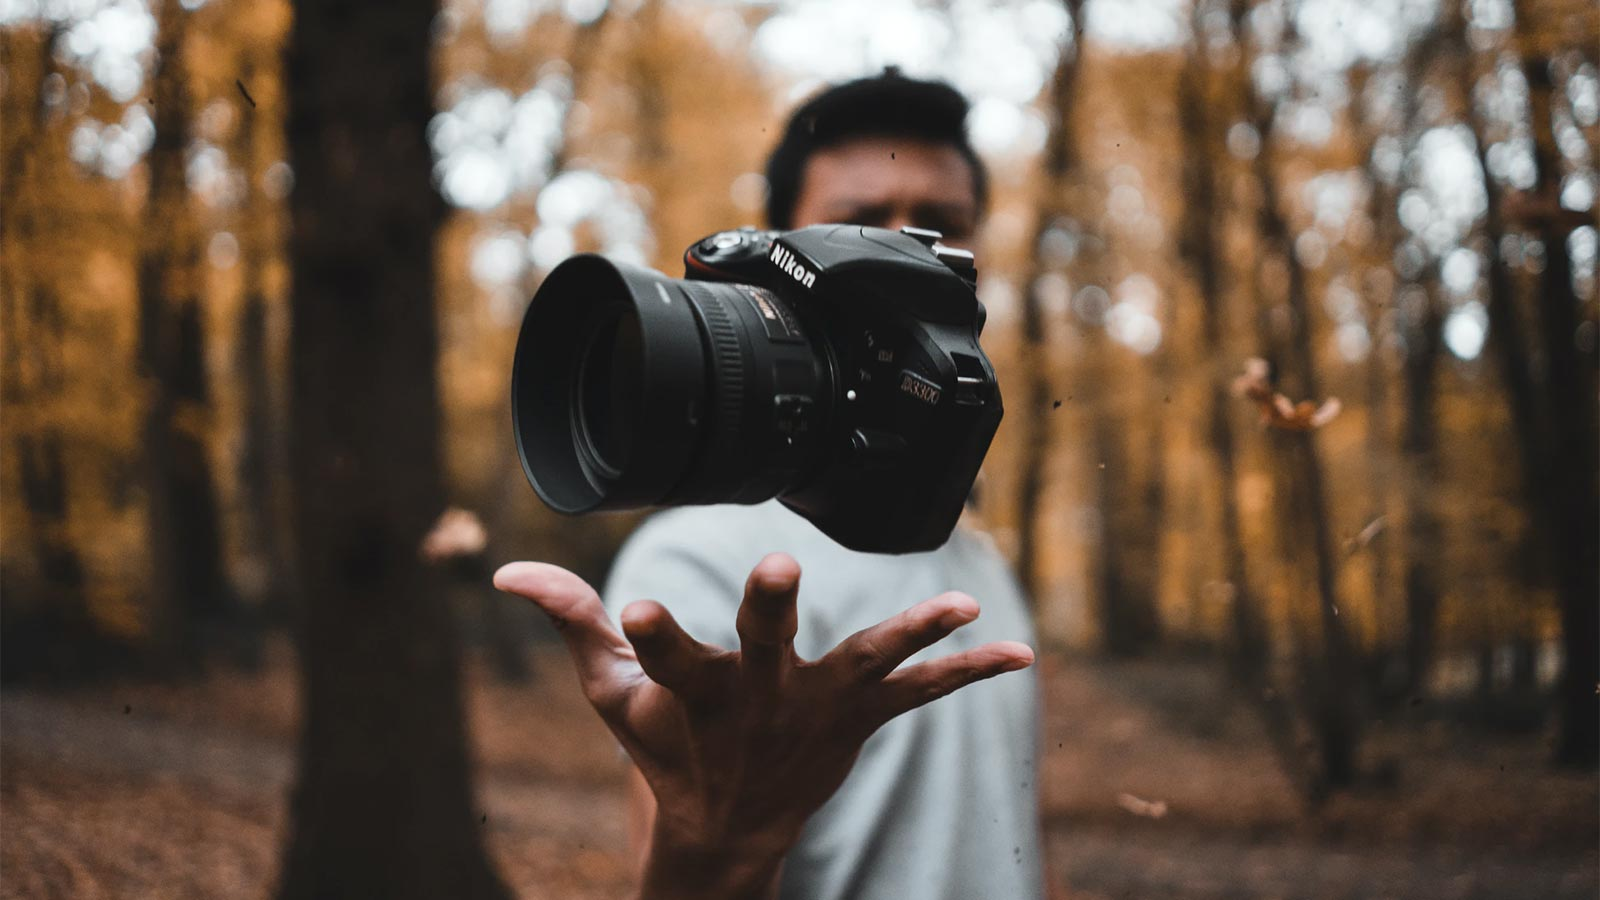 How to Develop Your Photography Skills